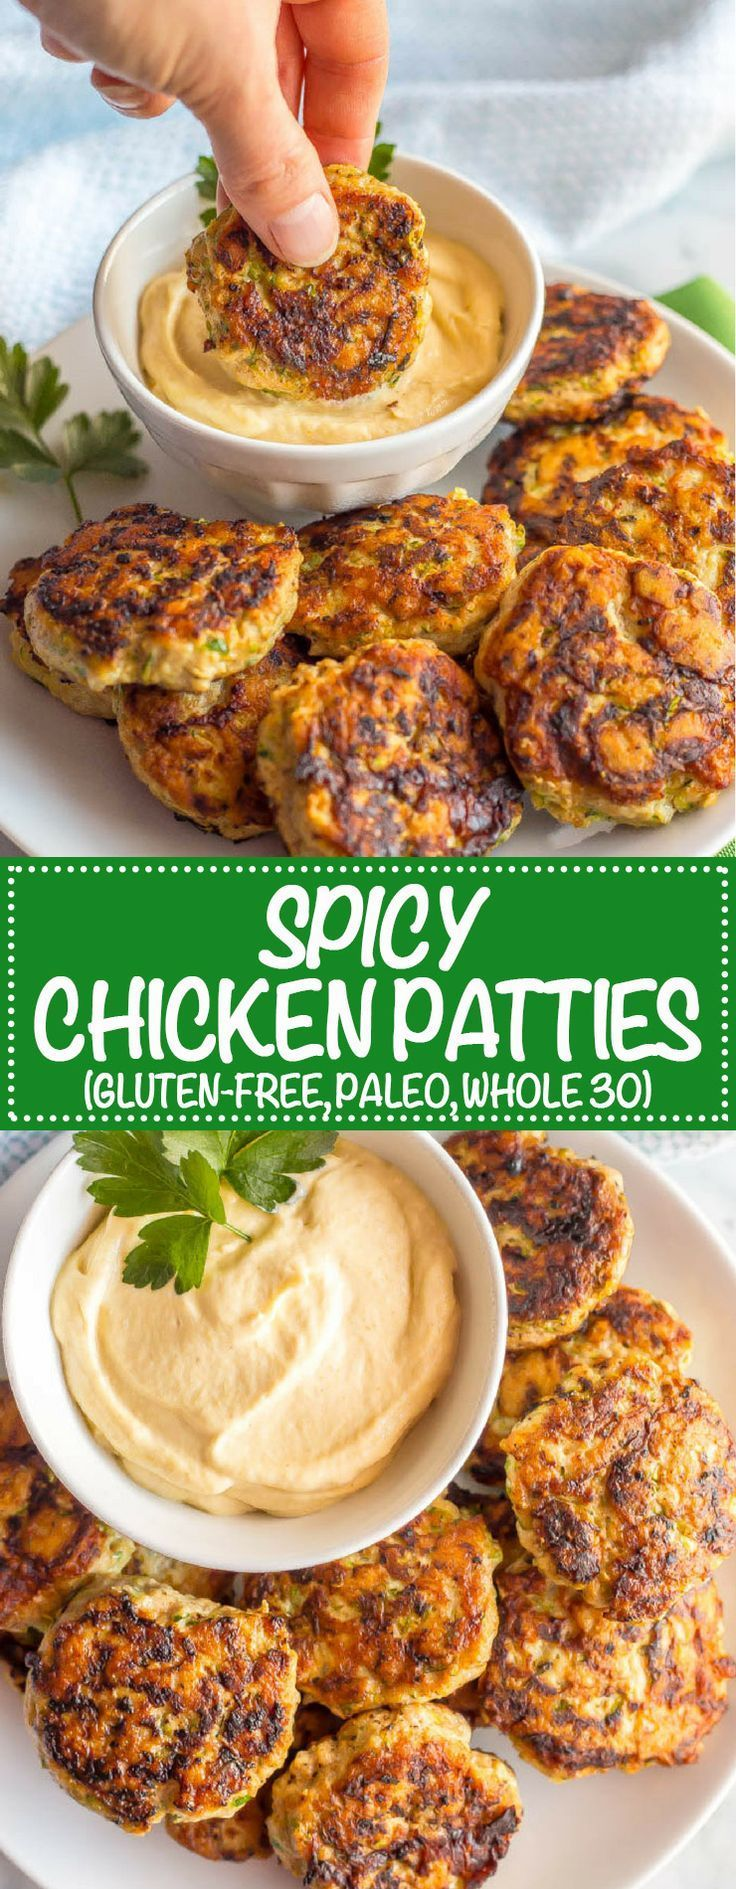 Spicy chicken patties are a really simple, easy recipe and can be used for wraps, salads, sliders, with a sauce or alongside some eggs with breakfast. Paleo, gluten-free and whole 30-approved, these patties will become a new favorite! #whole30recipes #paleorecipes #healthychickenrecipes #simplechickenrecipes   www.familyfoodonthetable.com